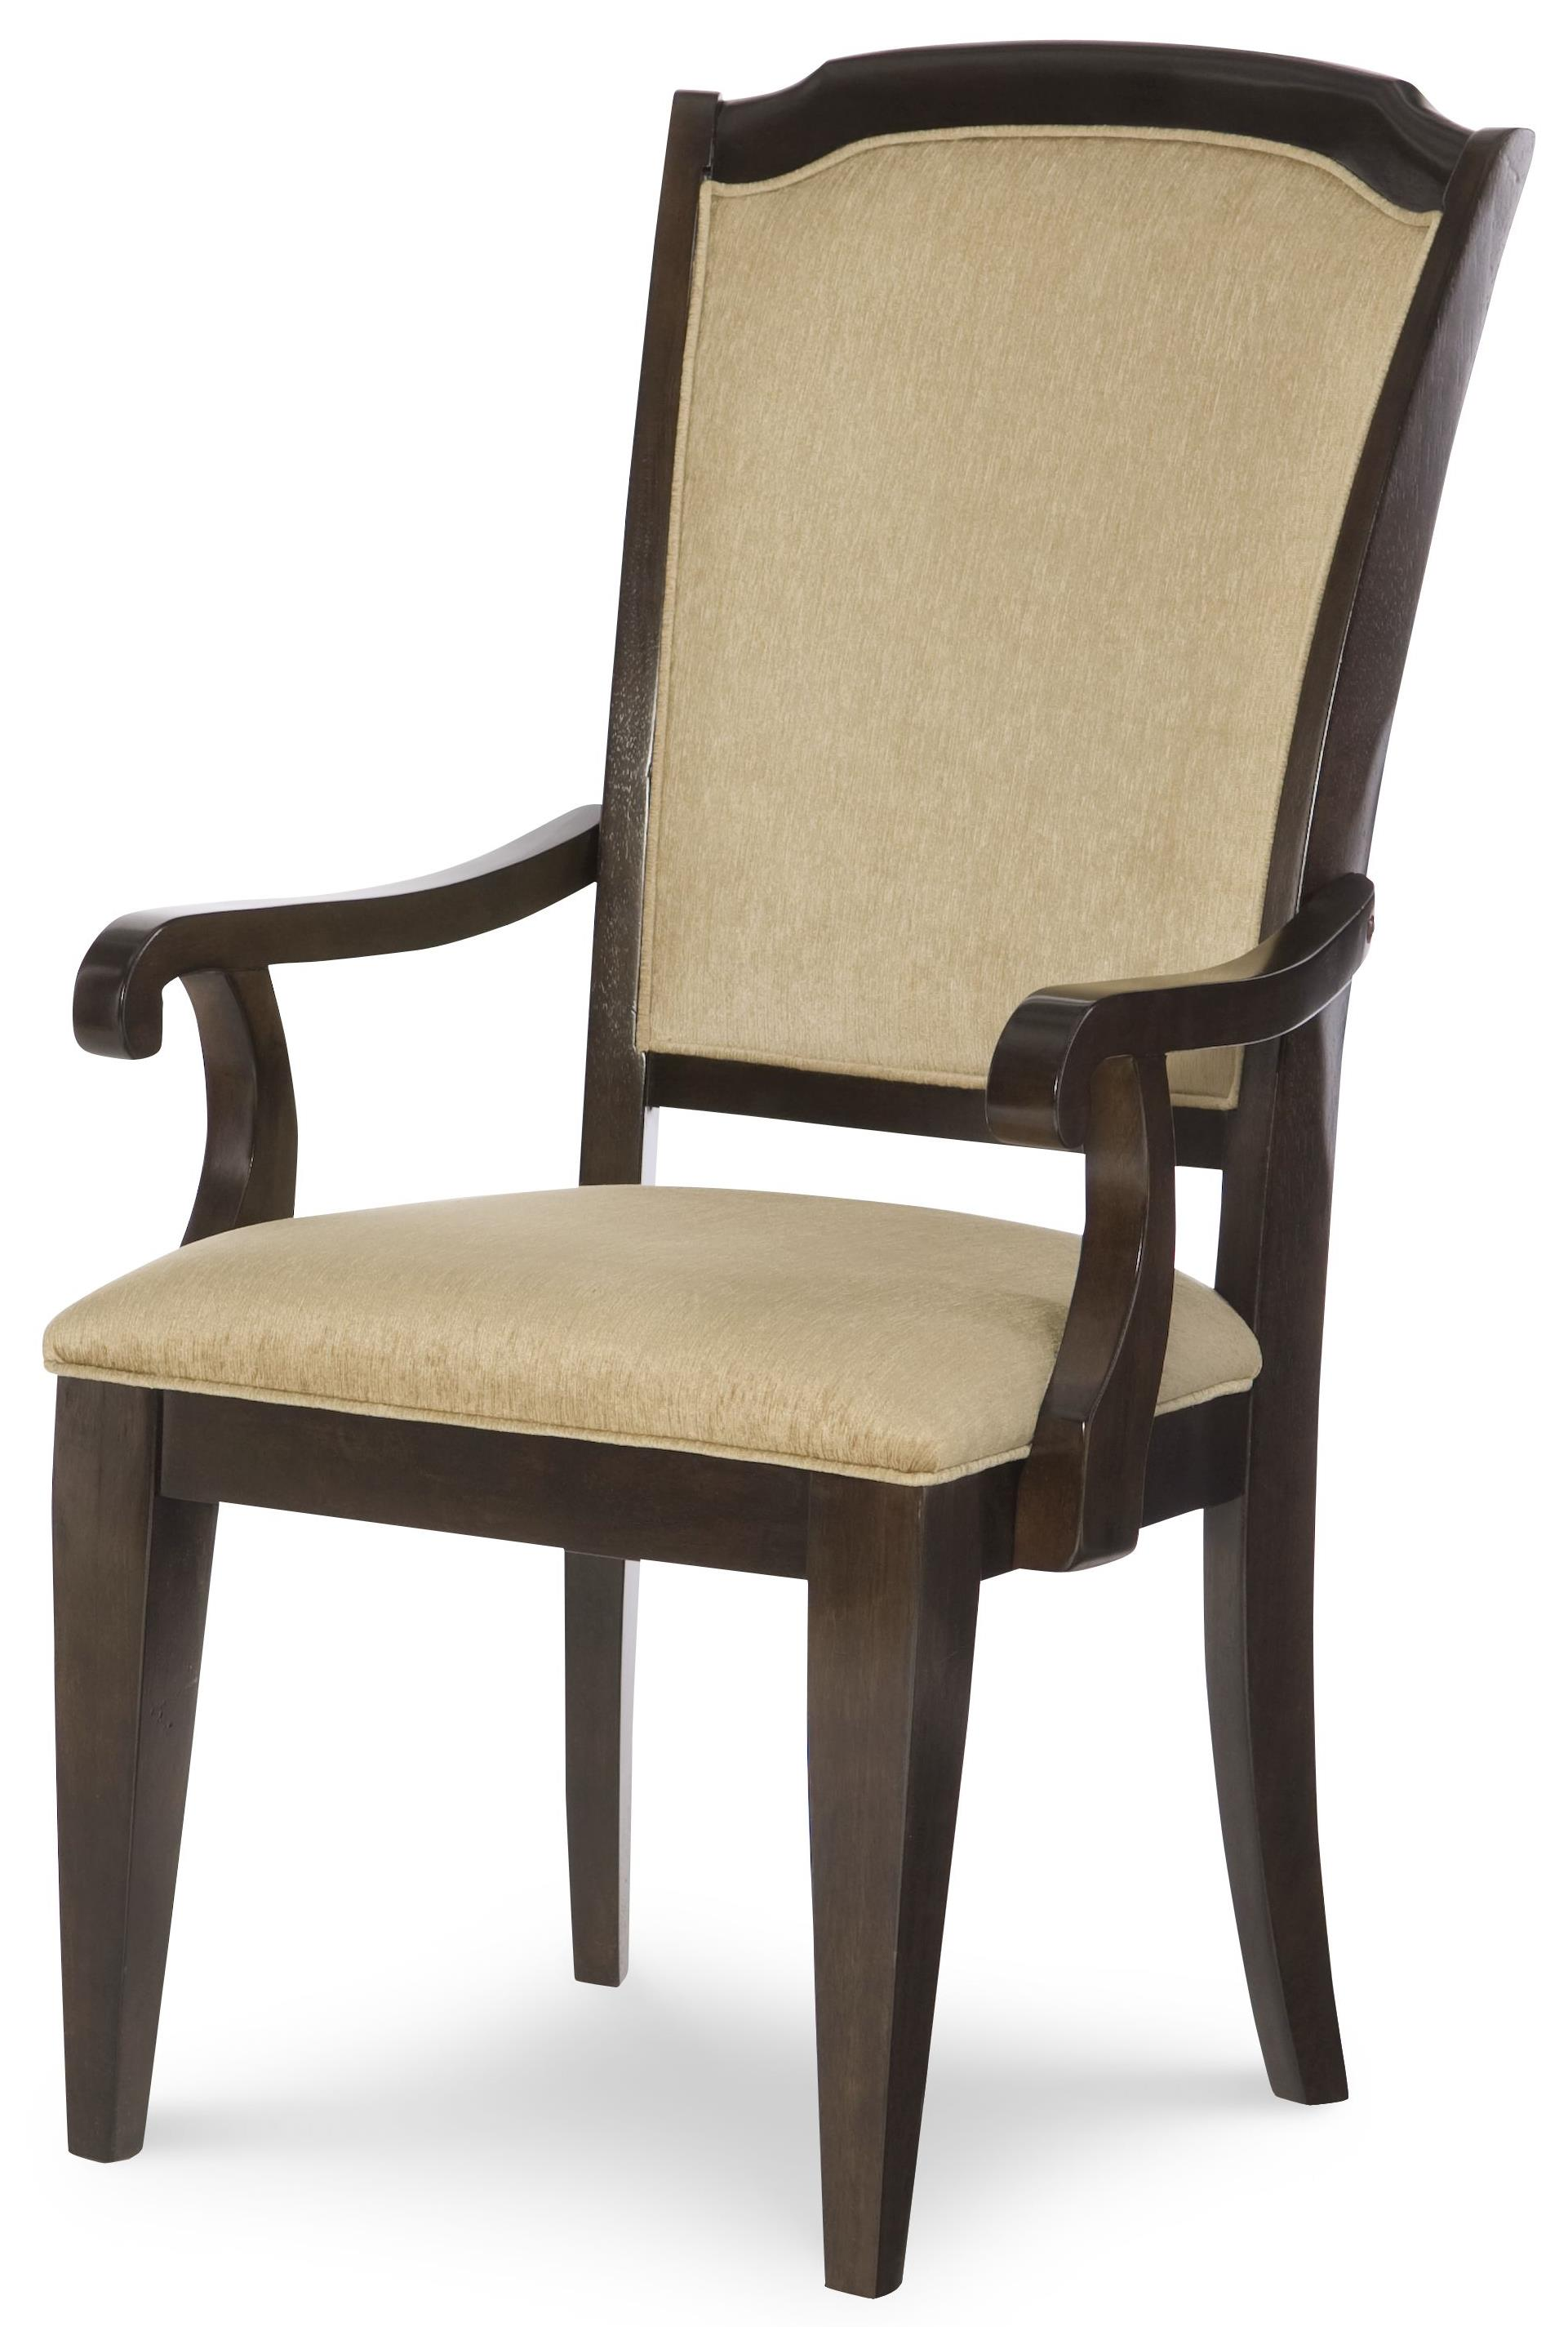 Legacy Classic Sophia Ribbon Back Arm Chair  - Item Number: 4450-241 KD